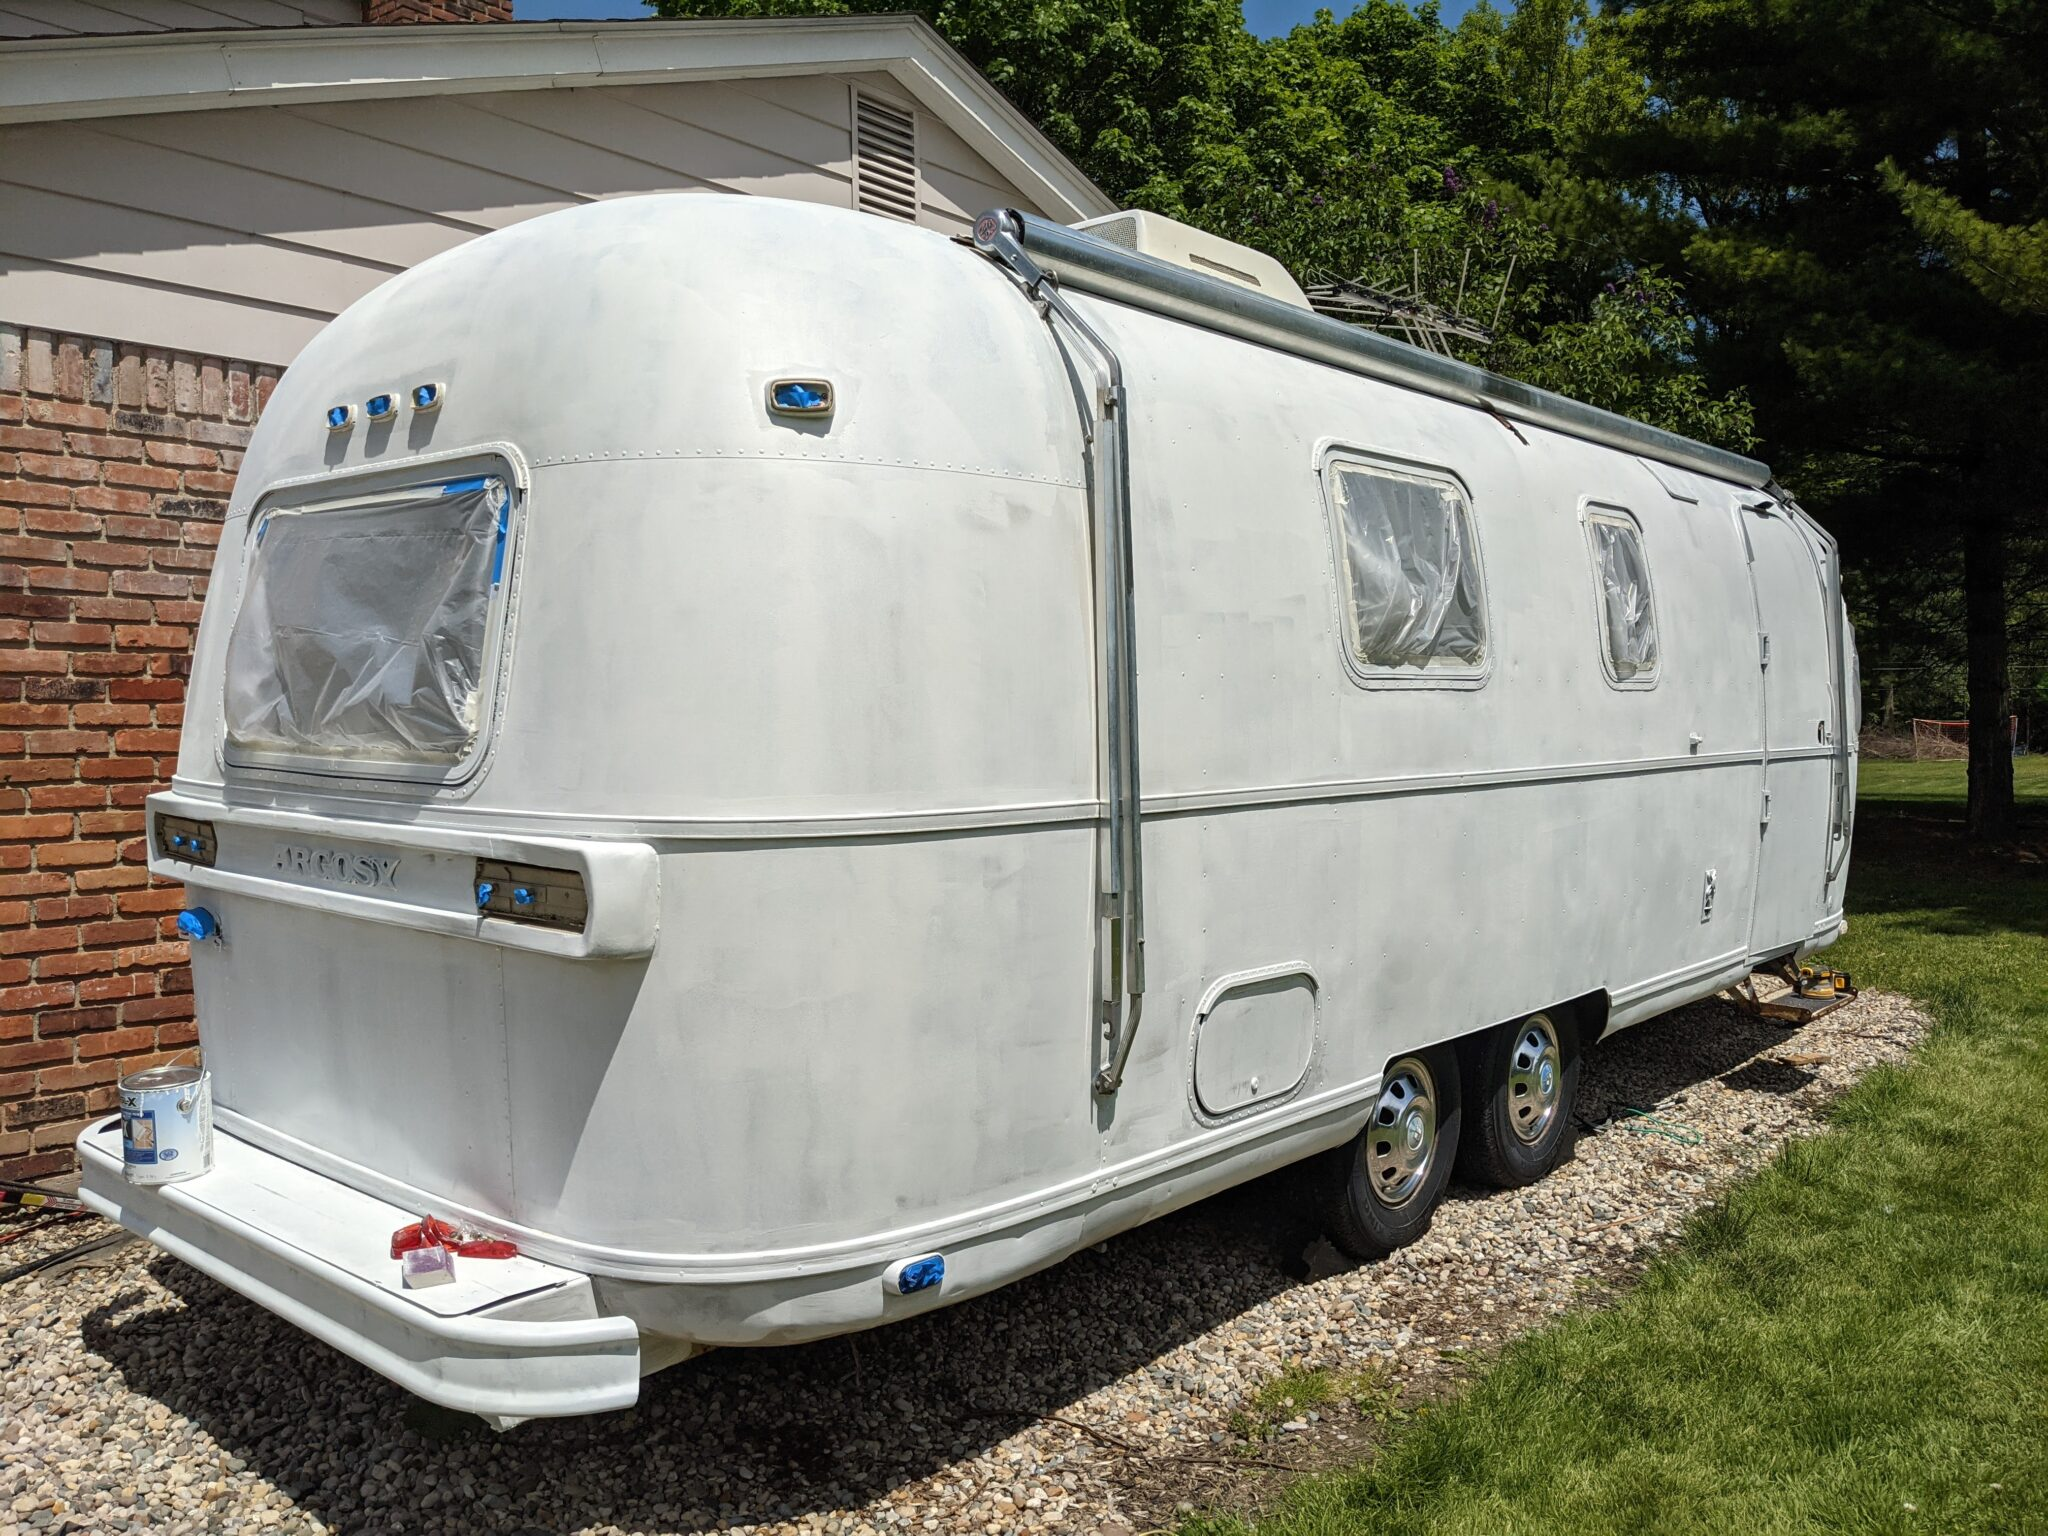 Our 1974 Airstream Argosy Travel Trailer Renovation Project All Things with Purpose Sarah Lemp 15